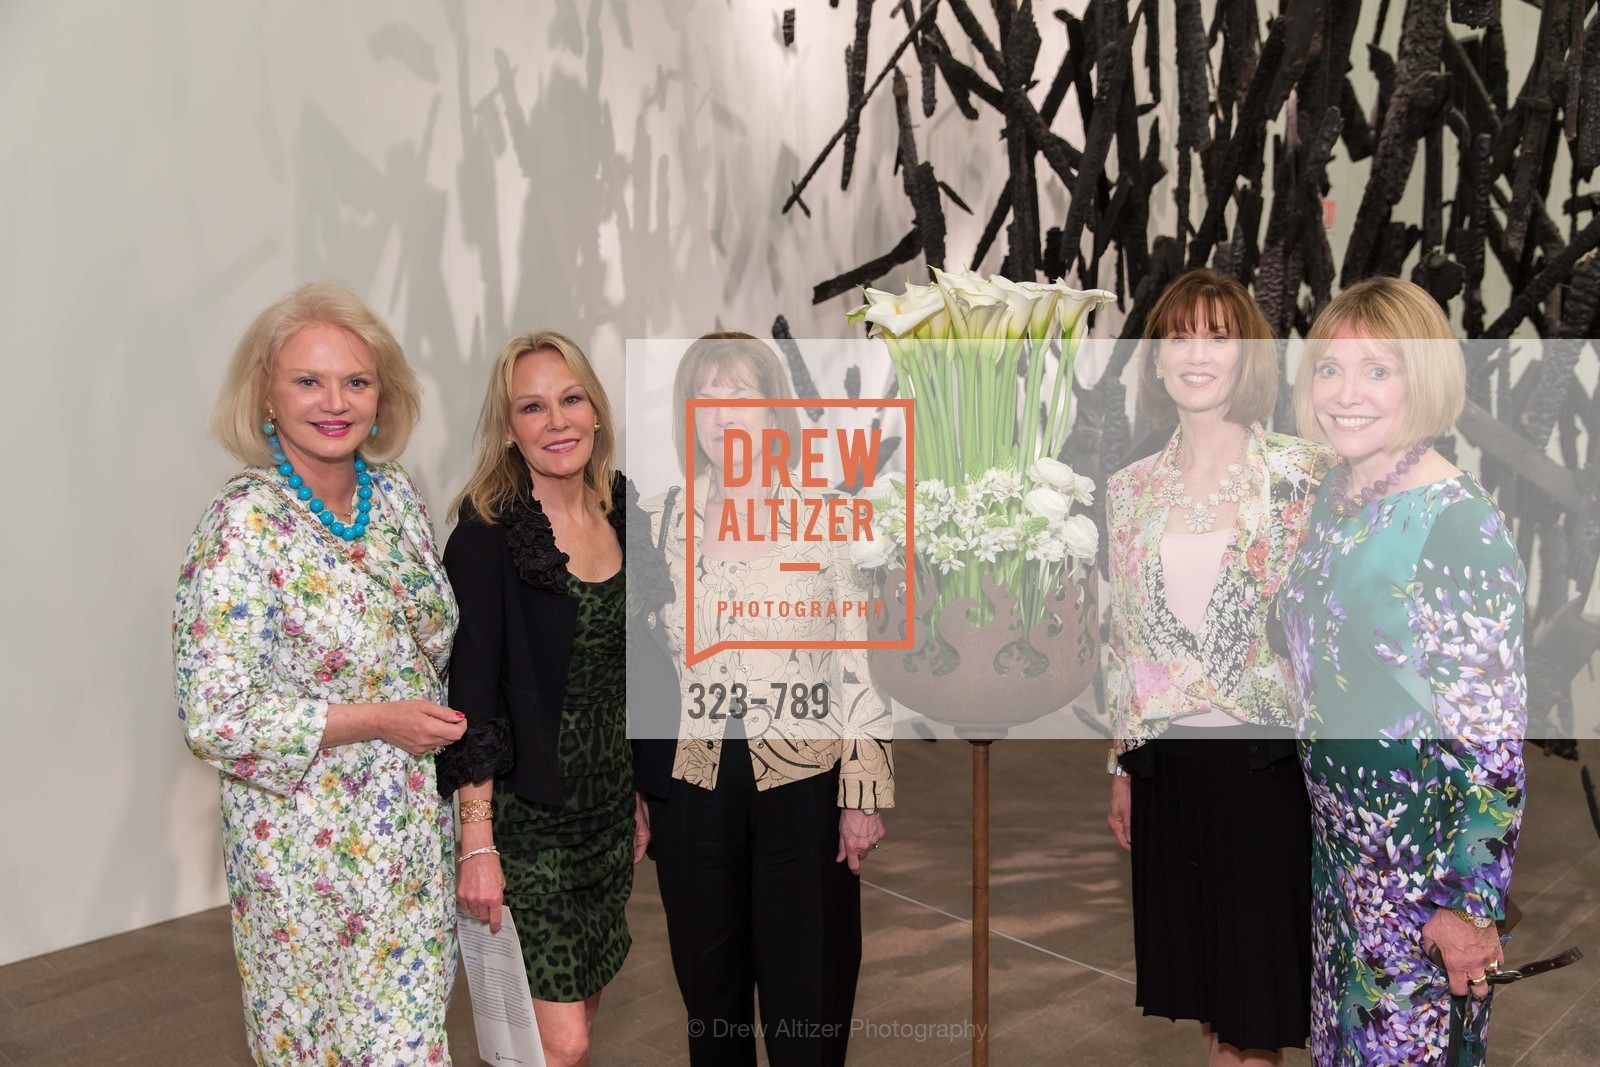 Heide Betz, Ellen Coleman, Marcia Handley, Lisa Miller, Merrill Randol, ALONZO KING LINE'S Ballet Spring Gala 2015, US, April 12th, 2015,Drew Altizer, Drew Altizer Photography, full-service agency, private events, San Francisco photographer, photographer california